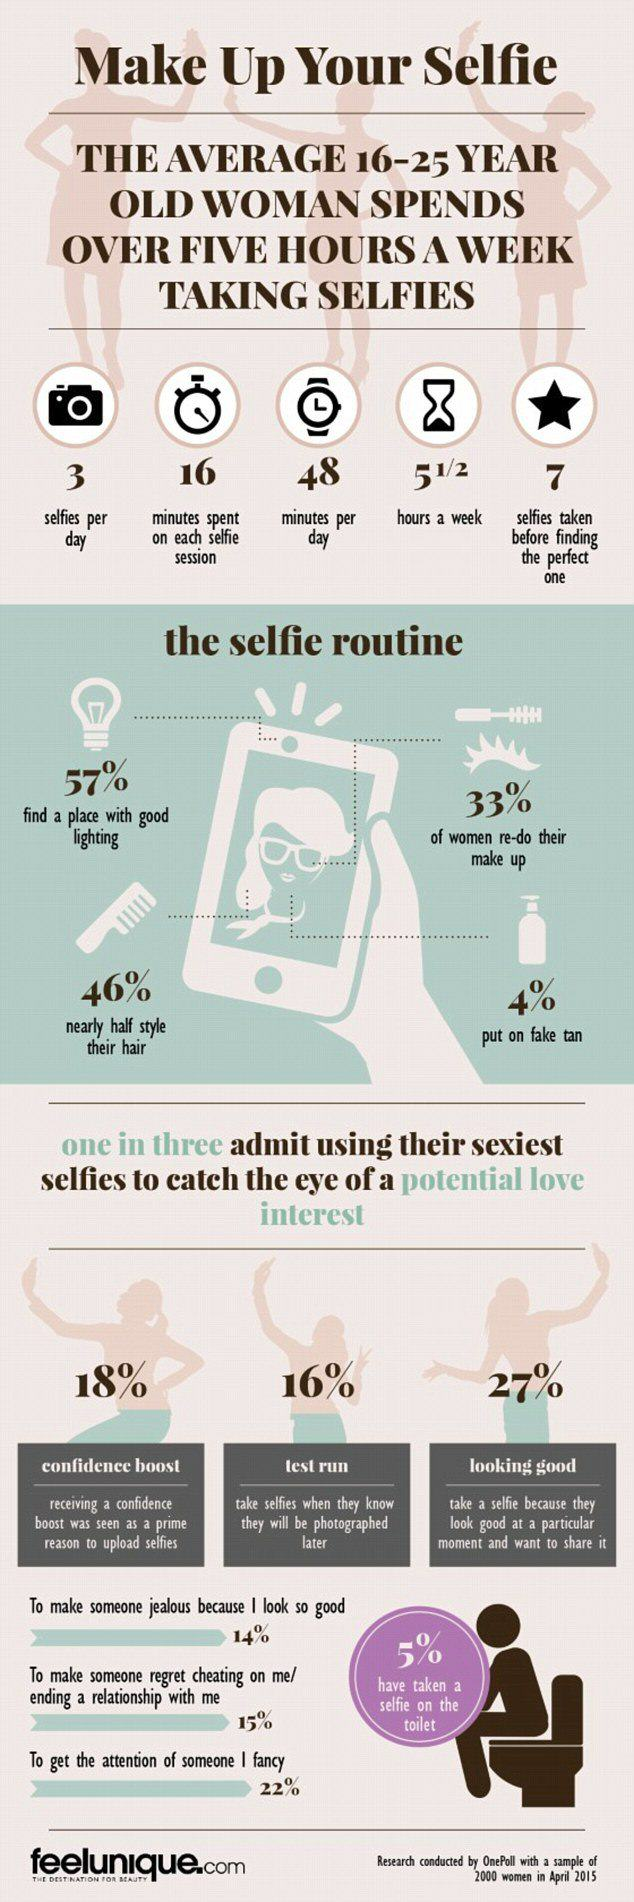 Women Spend Over Five Hours A Week Taking Selfies And Its All For Guys selfies1